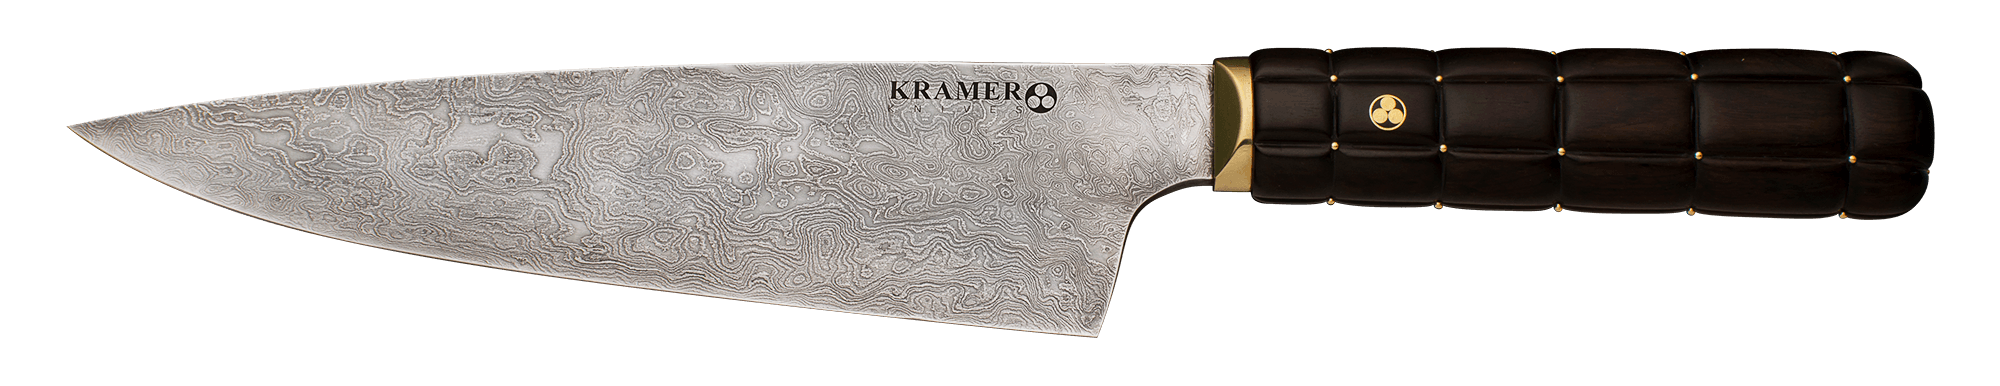 9″ Repurposed AR-15 Chef's Knife | Kramer Knives